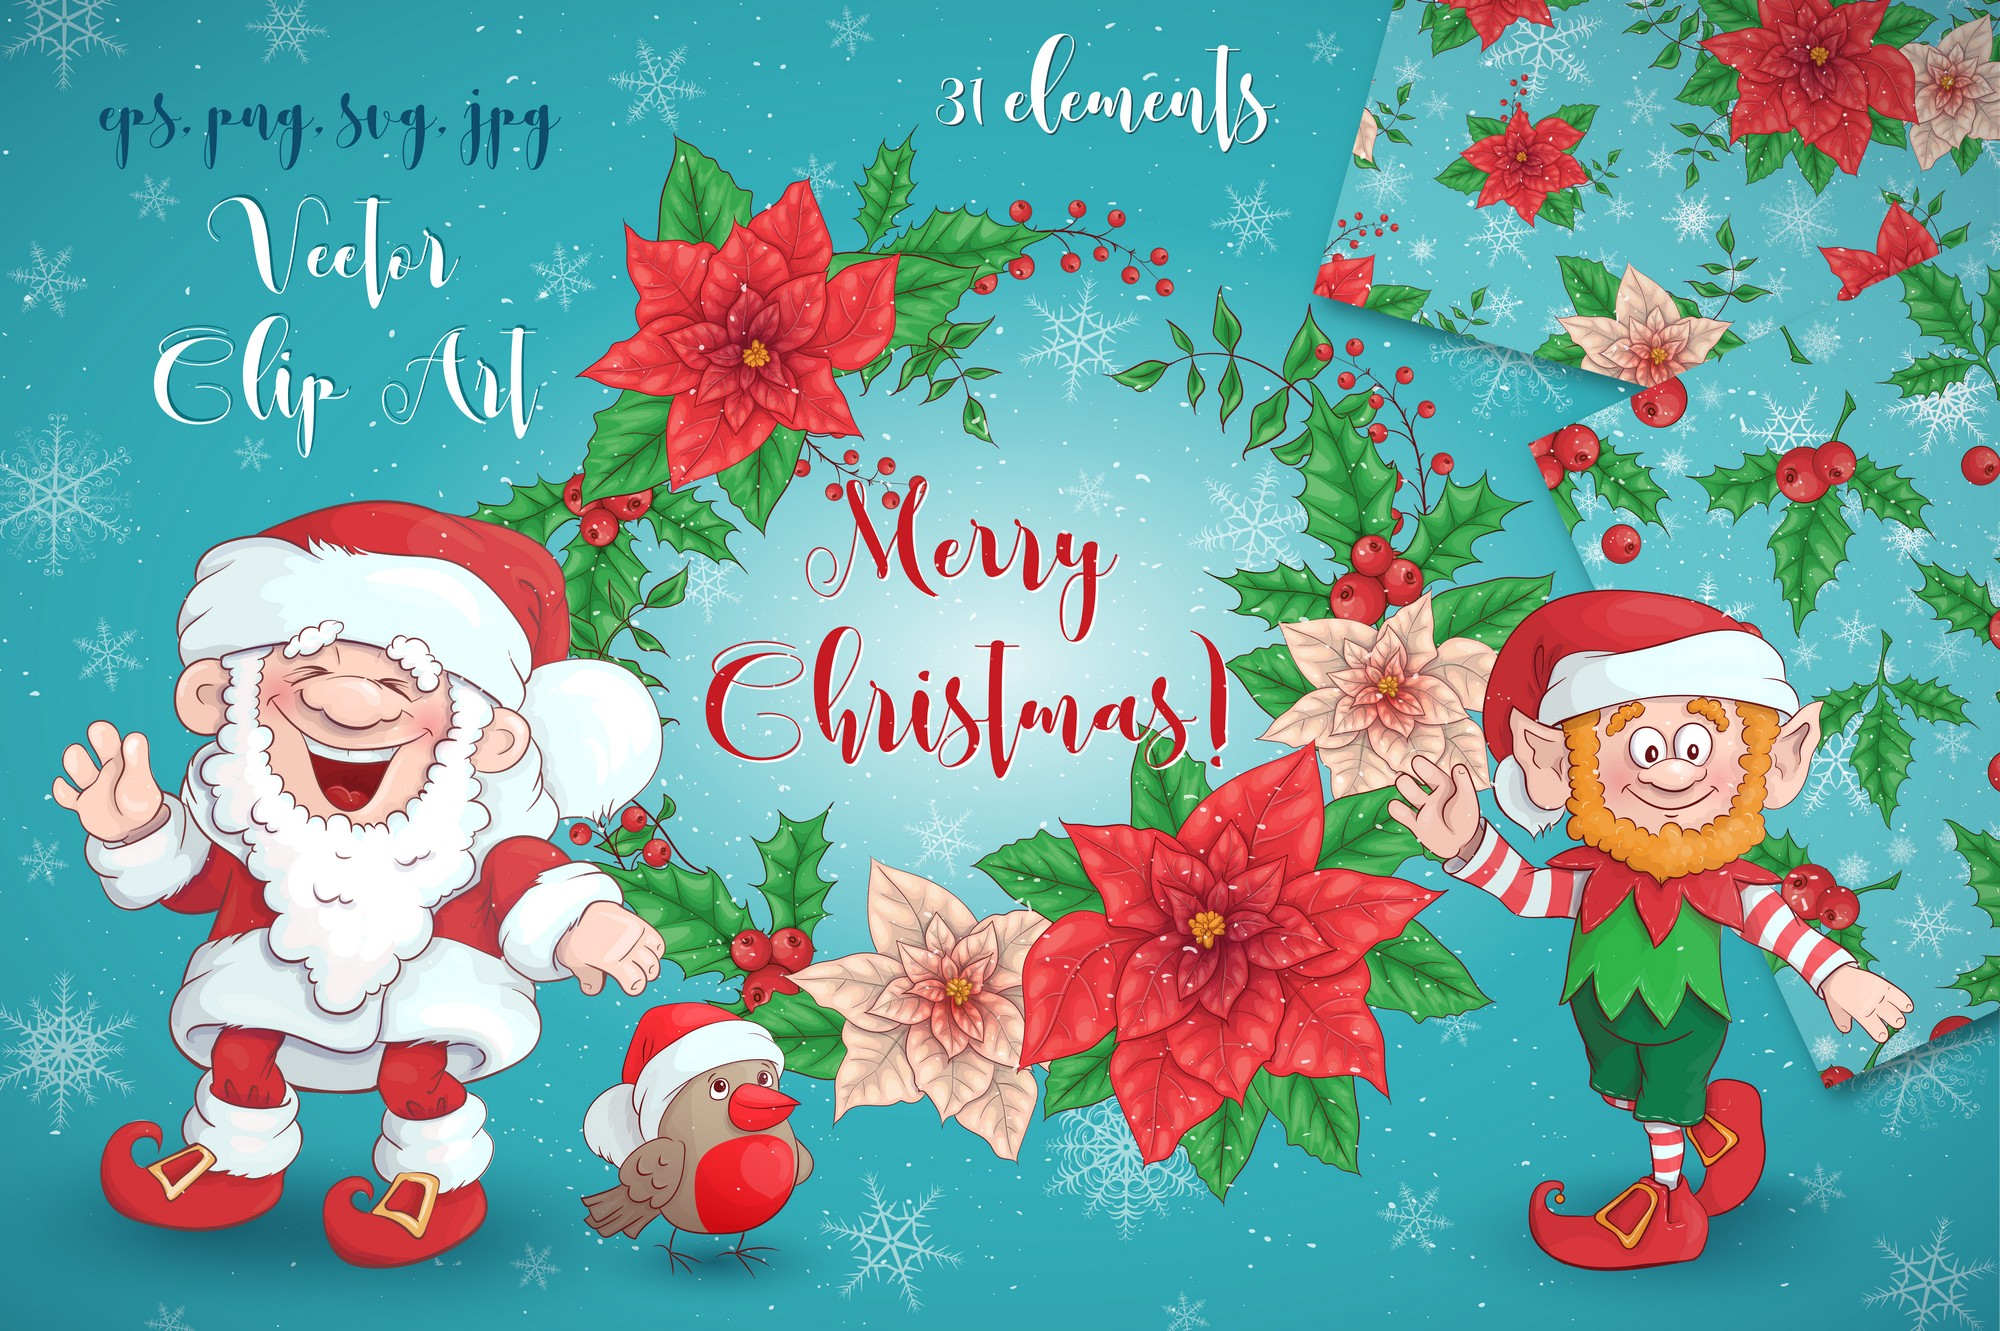 Download Free Merry Christmas Bundle Graphic By Nicjulia Creative Fabrica for Cricut Explore, Silhouette and other cutting machines.